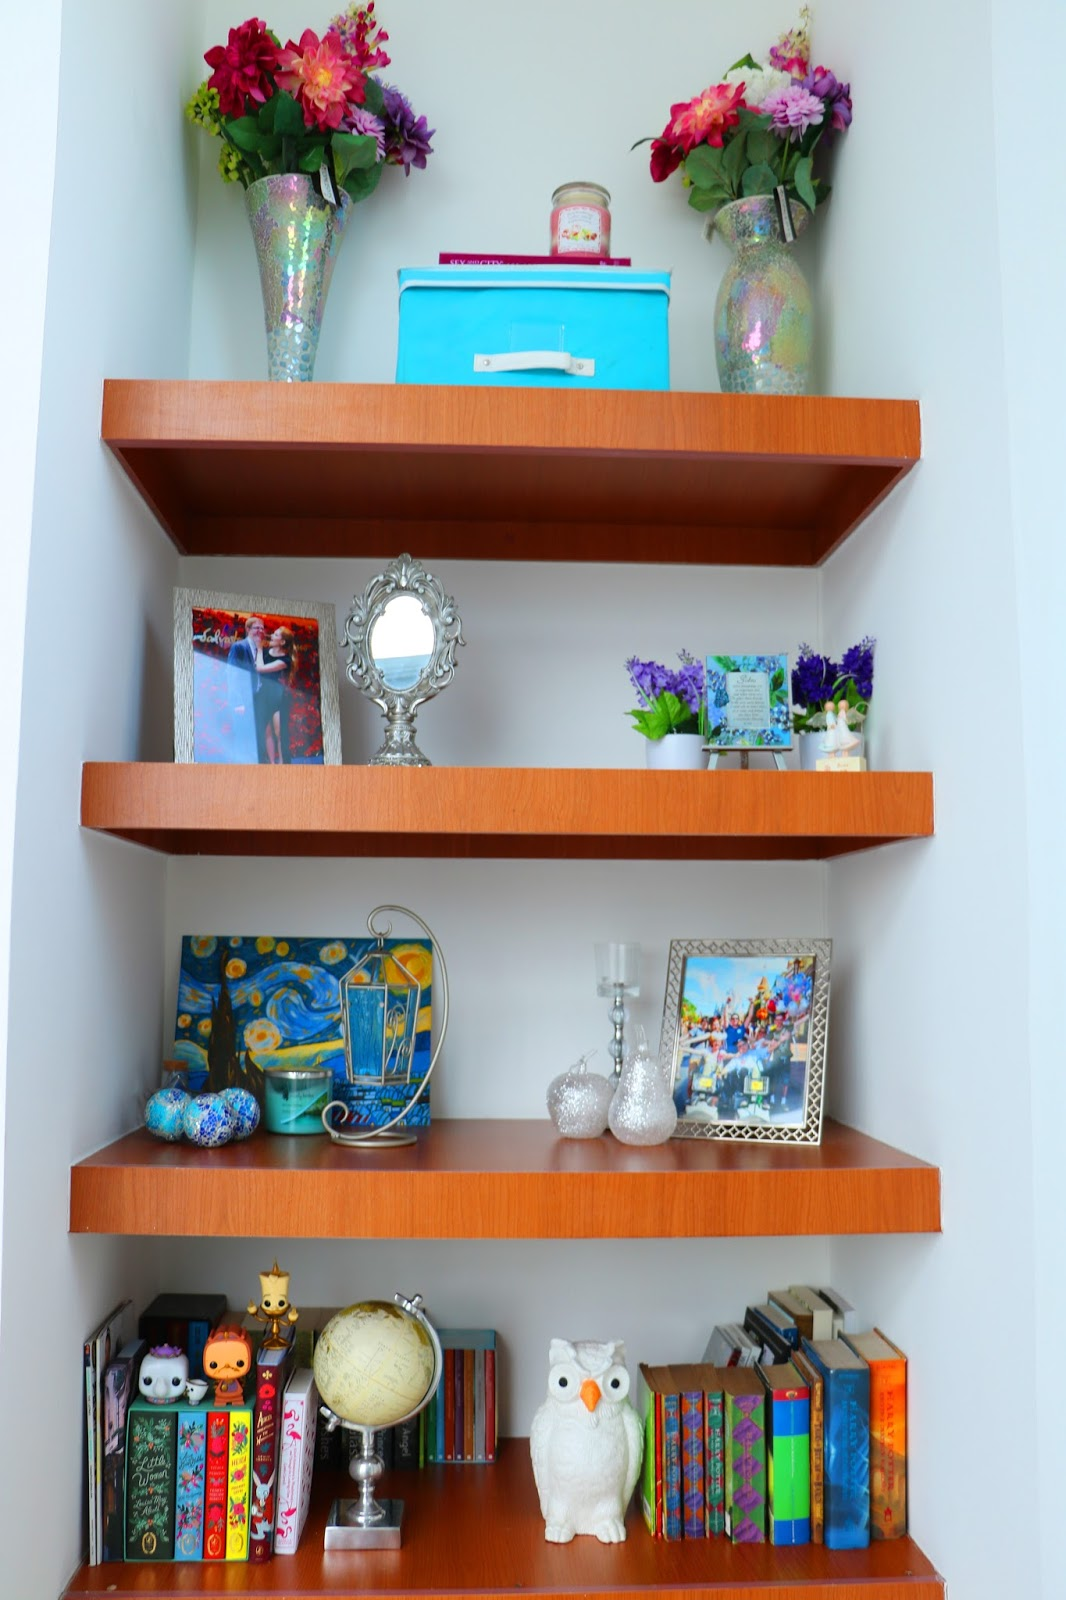 Cute and colorful shelf decor